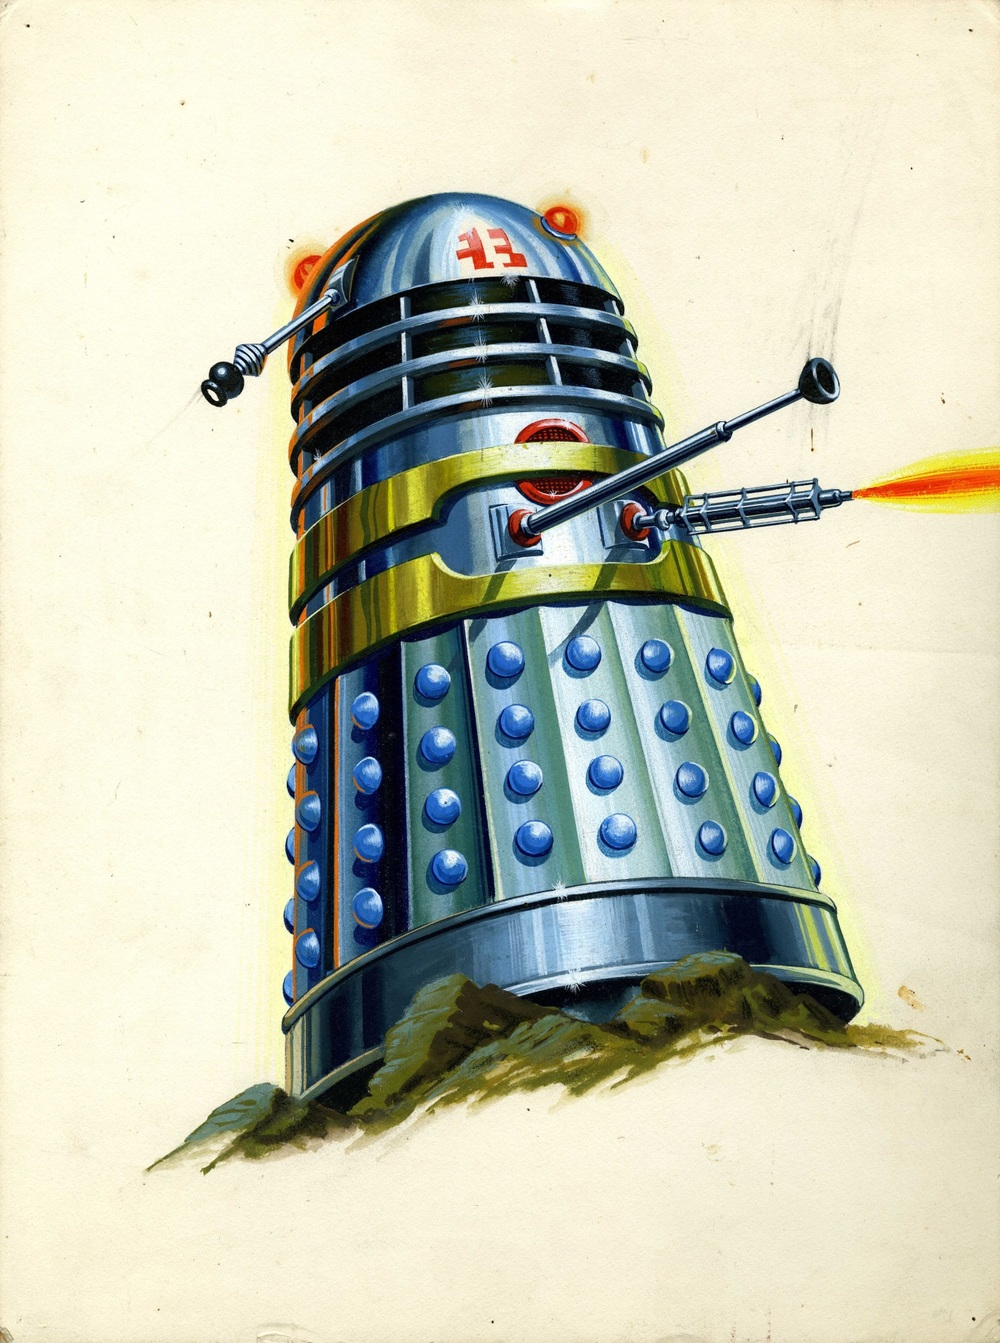 Original artwork for The Dalek Book frontispiece